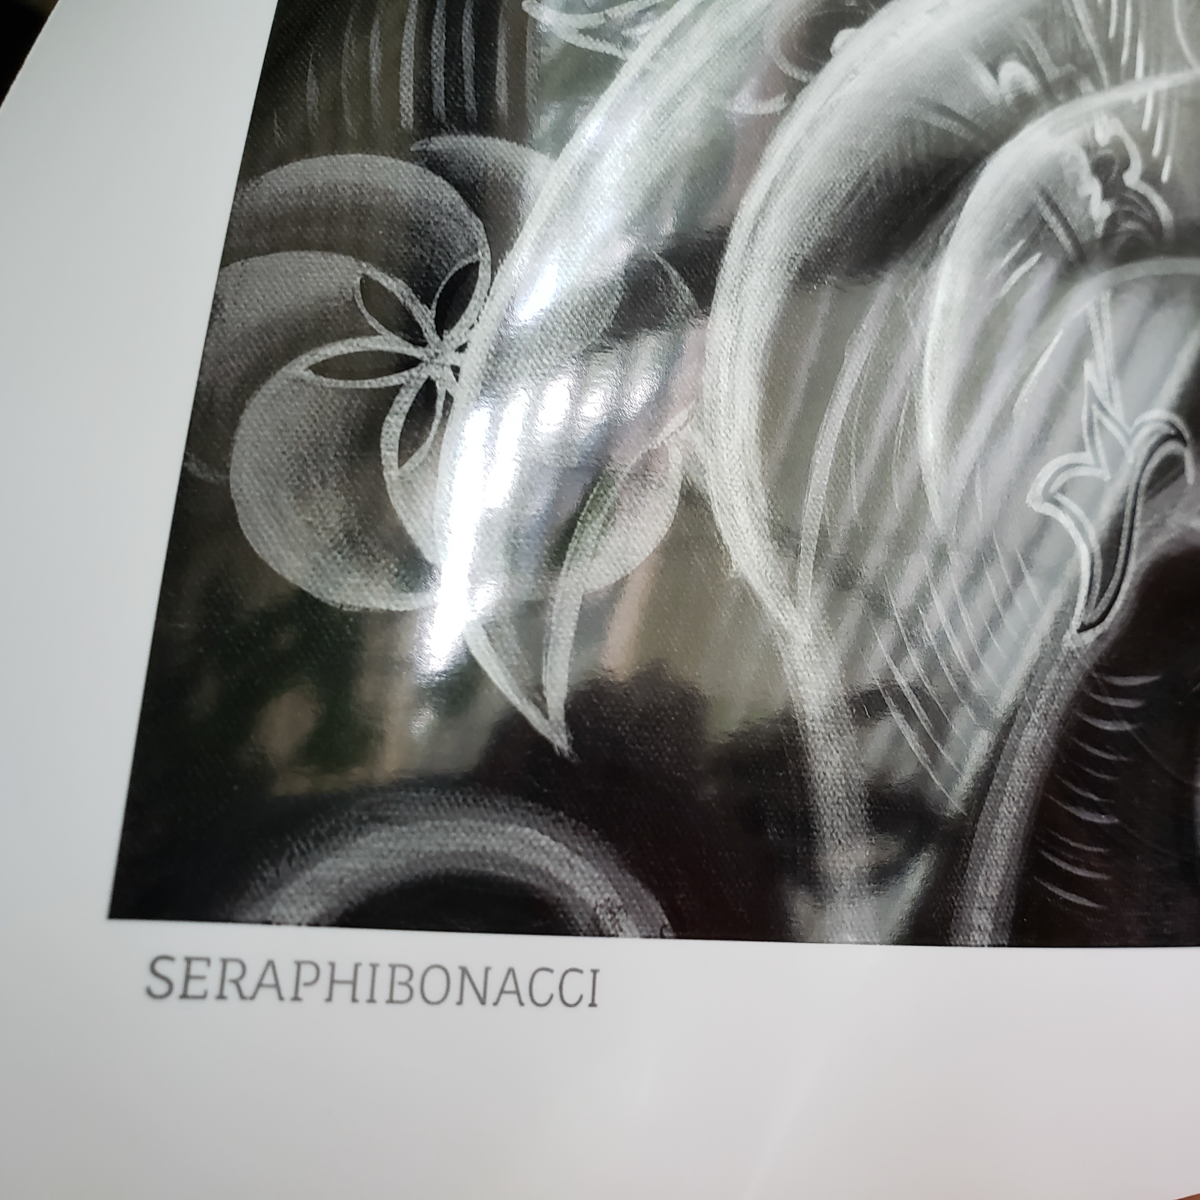 Image of 'Seraphibonacci' Silver - limited black & white poster